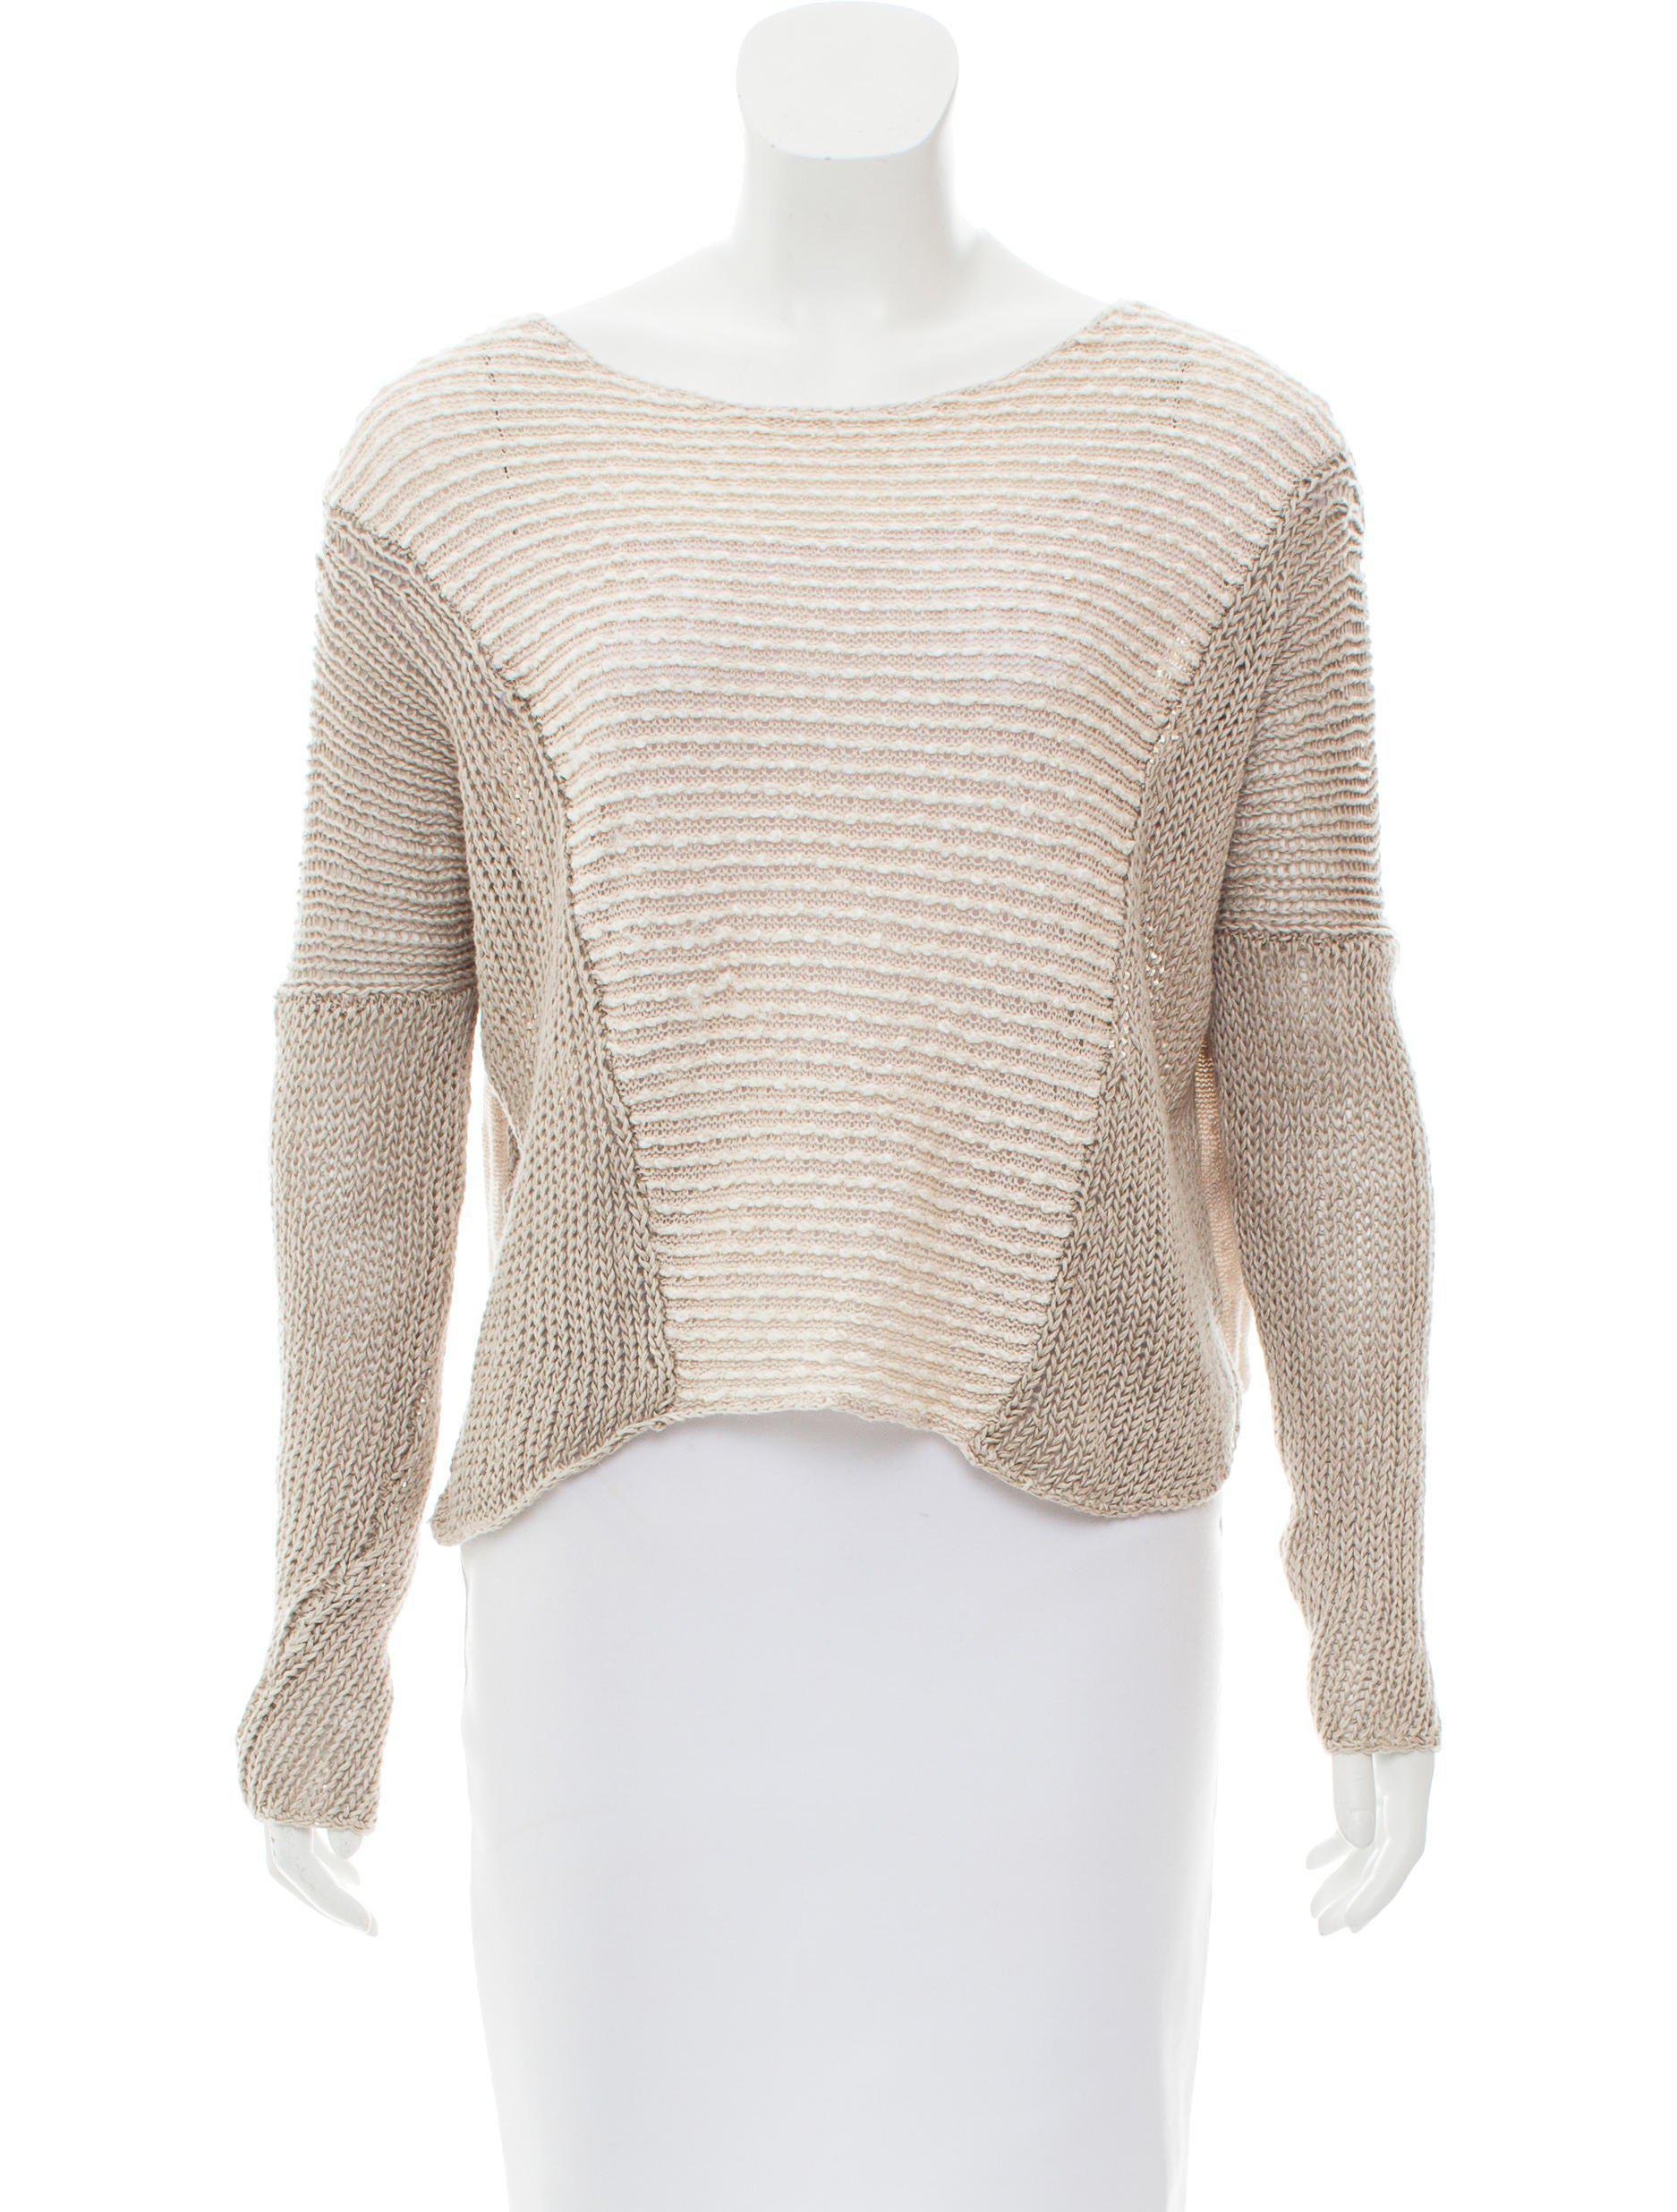 255551a13904dd Lyst - Helmut Lang High-low Linen Sweater Beige in Natural